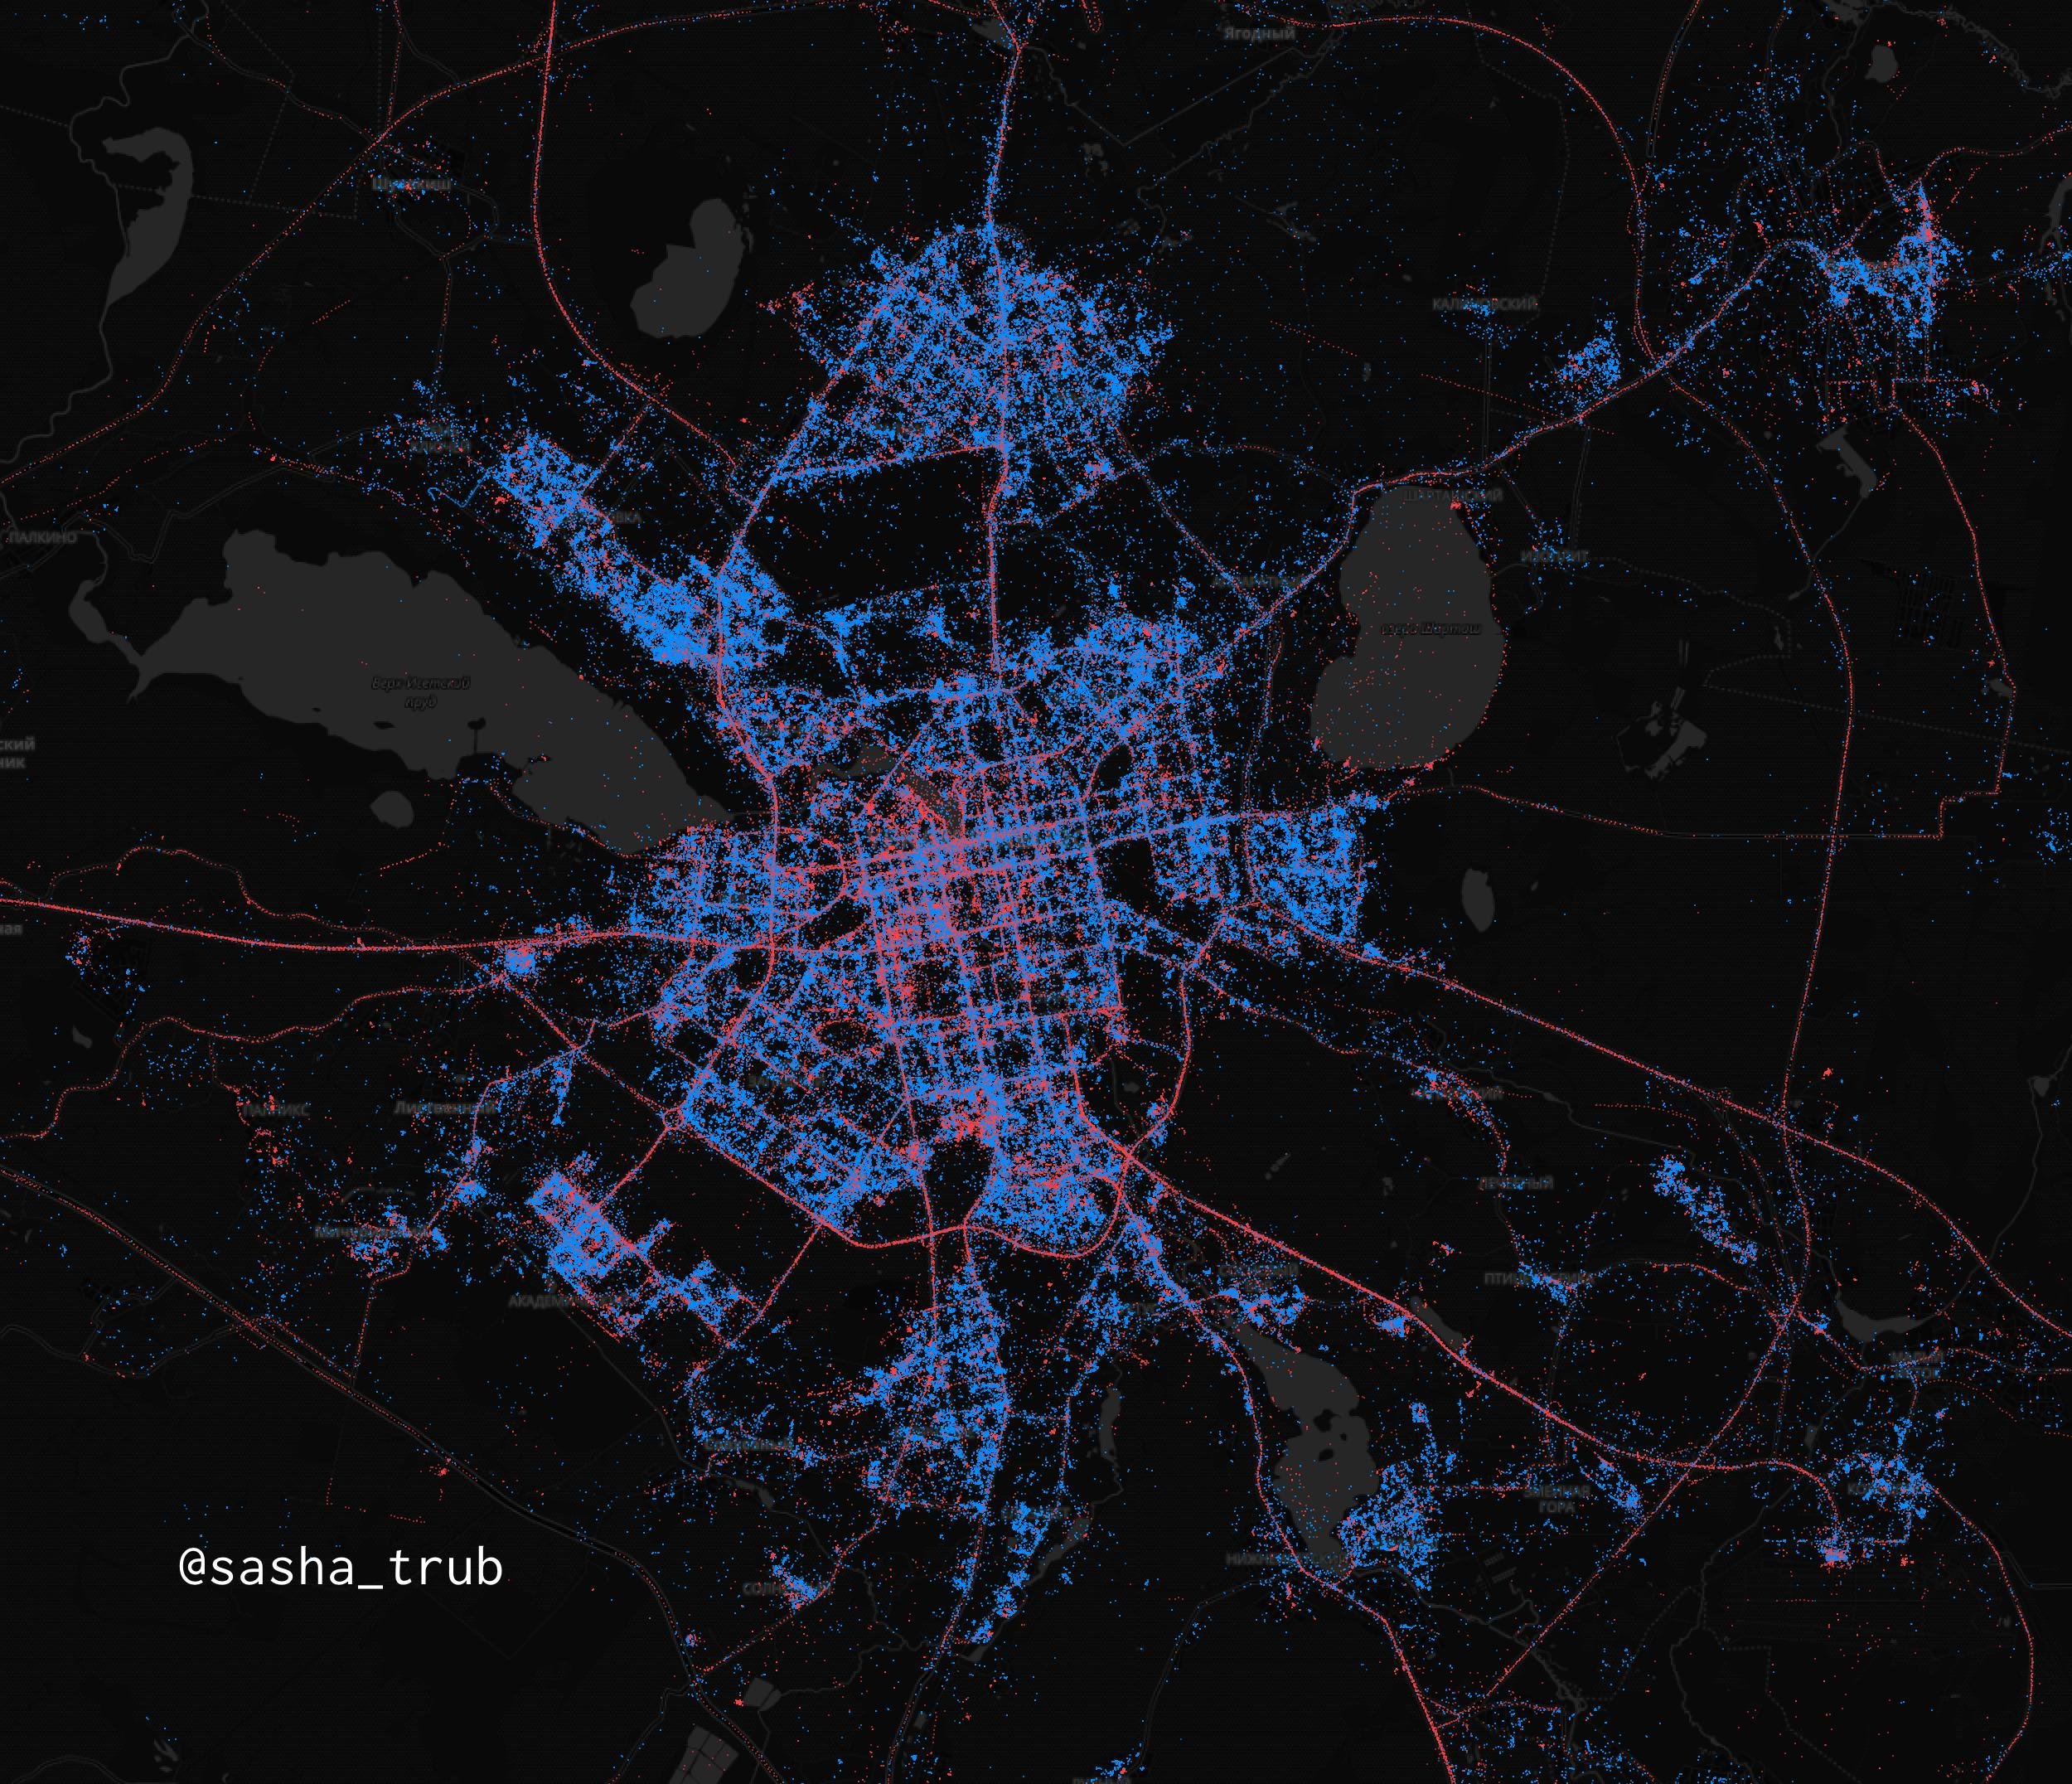 In Moscow - iPhones, in St. Petersburg - Android. What are the maps of Android and iOS users in Russia | Kanobu - Image 3